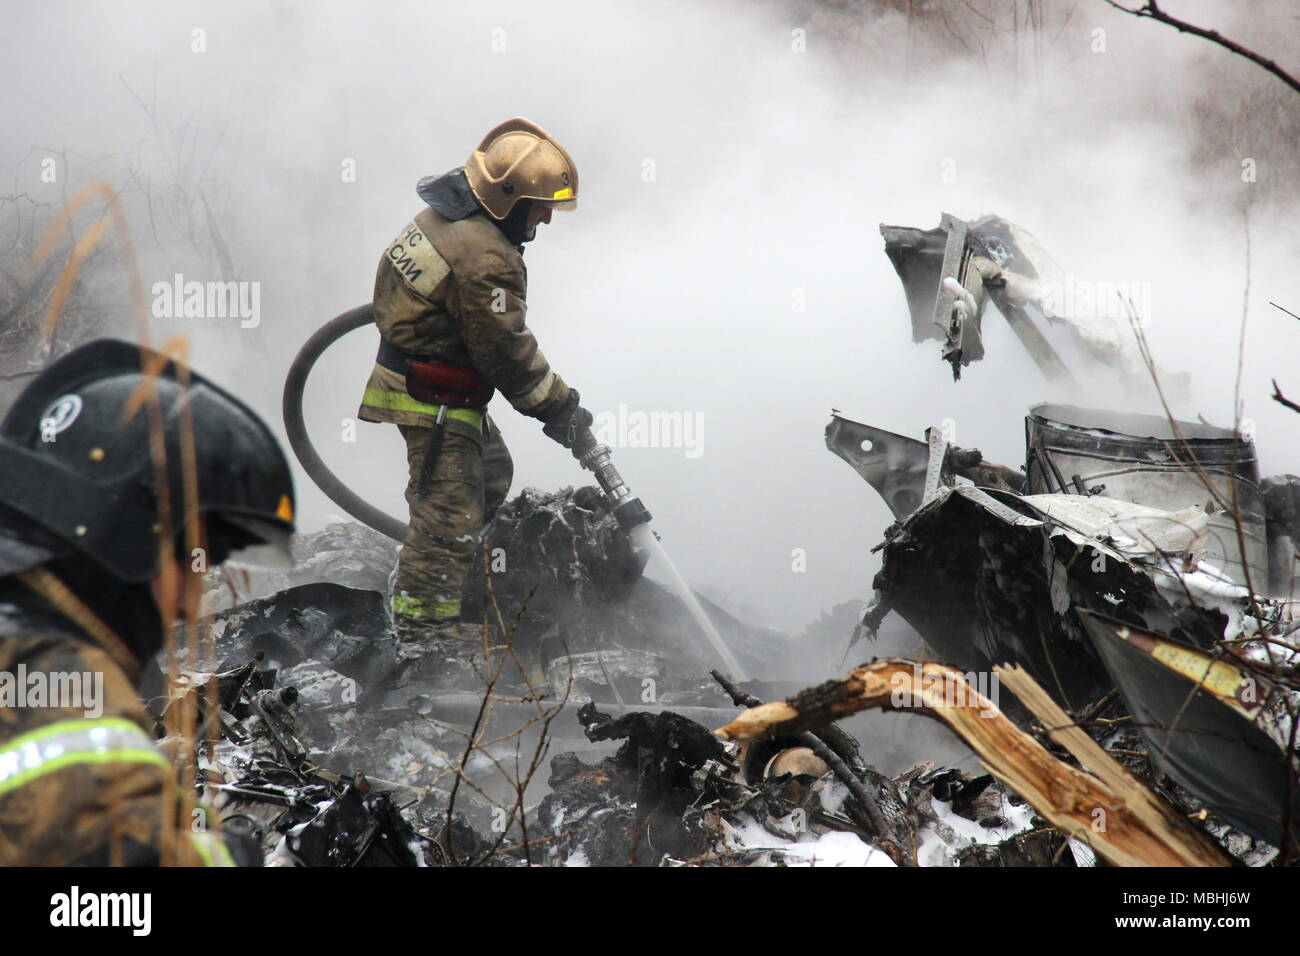 Khabarovsk, Russia. 11th Apr, 2018. KHABAROVSK, RUSSIA - APRIL 11, 2018: Emercom workers at the site of a crash of a civilian Mil Mi-8 helicopter of the Vostok airline; all six people onboard have died in the crash. Press Office of the Khabarovsk Territory branch of the Russian Emergency Situations Ministry/TASS Credit: ITAR-TASS News Agency/Alamy Live News - Stock Image